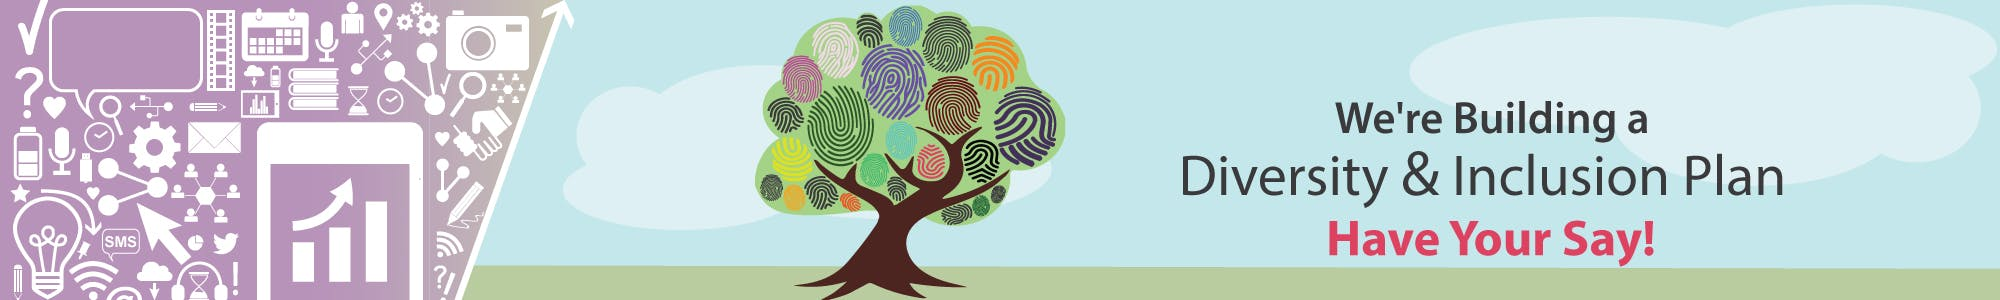 We're building a diversity and inclusion plan. Image features a tree with finger prints for the leaves and branches.